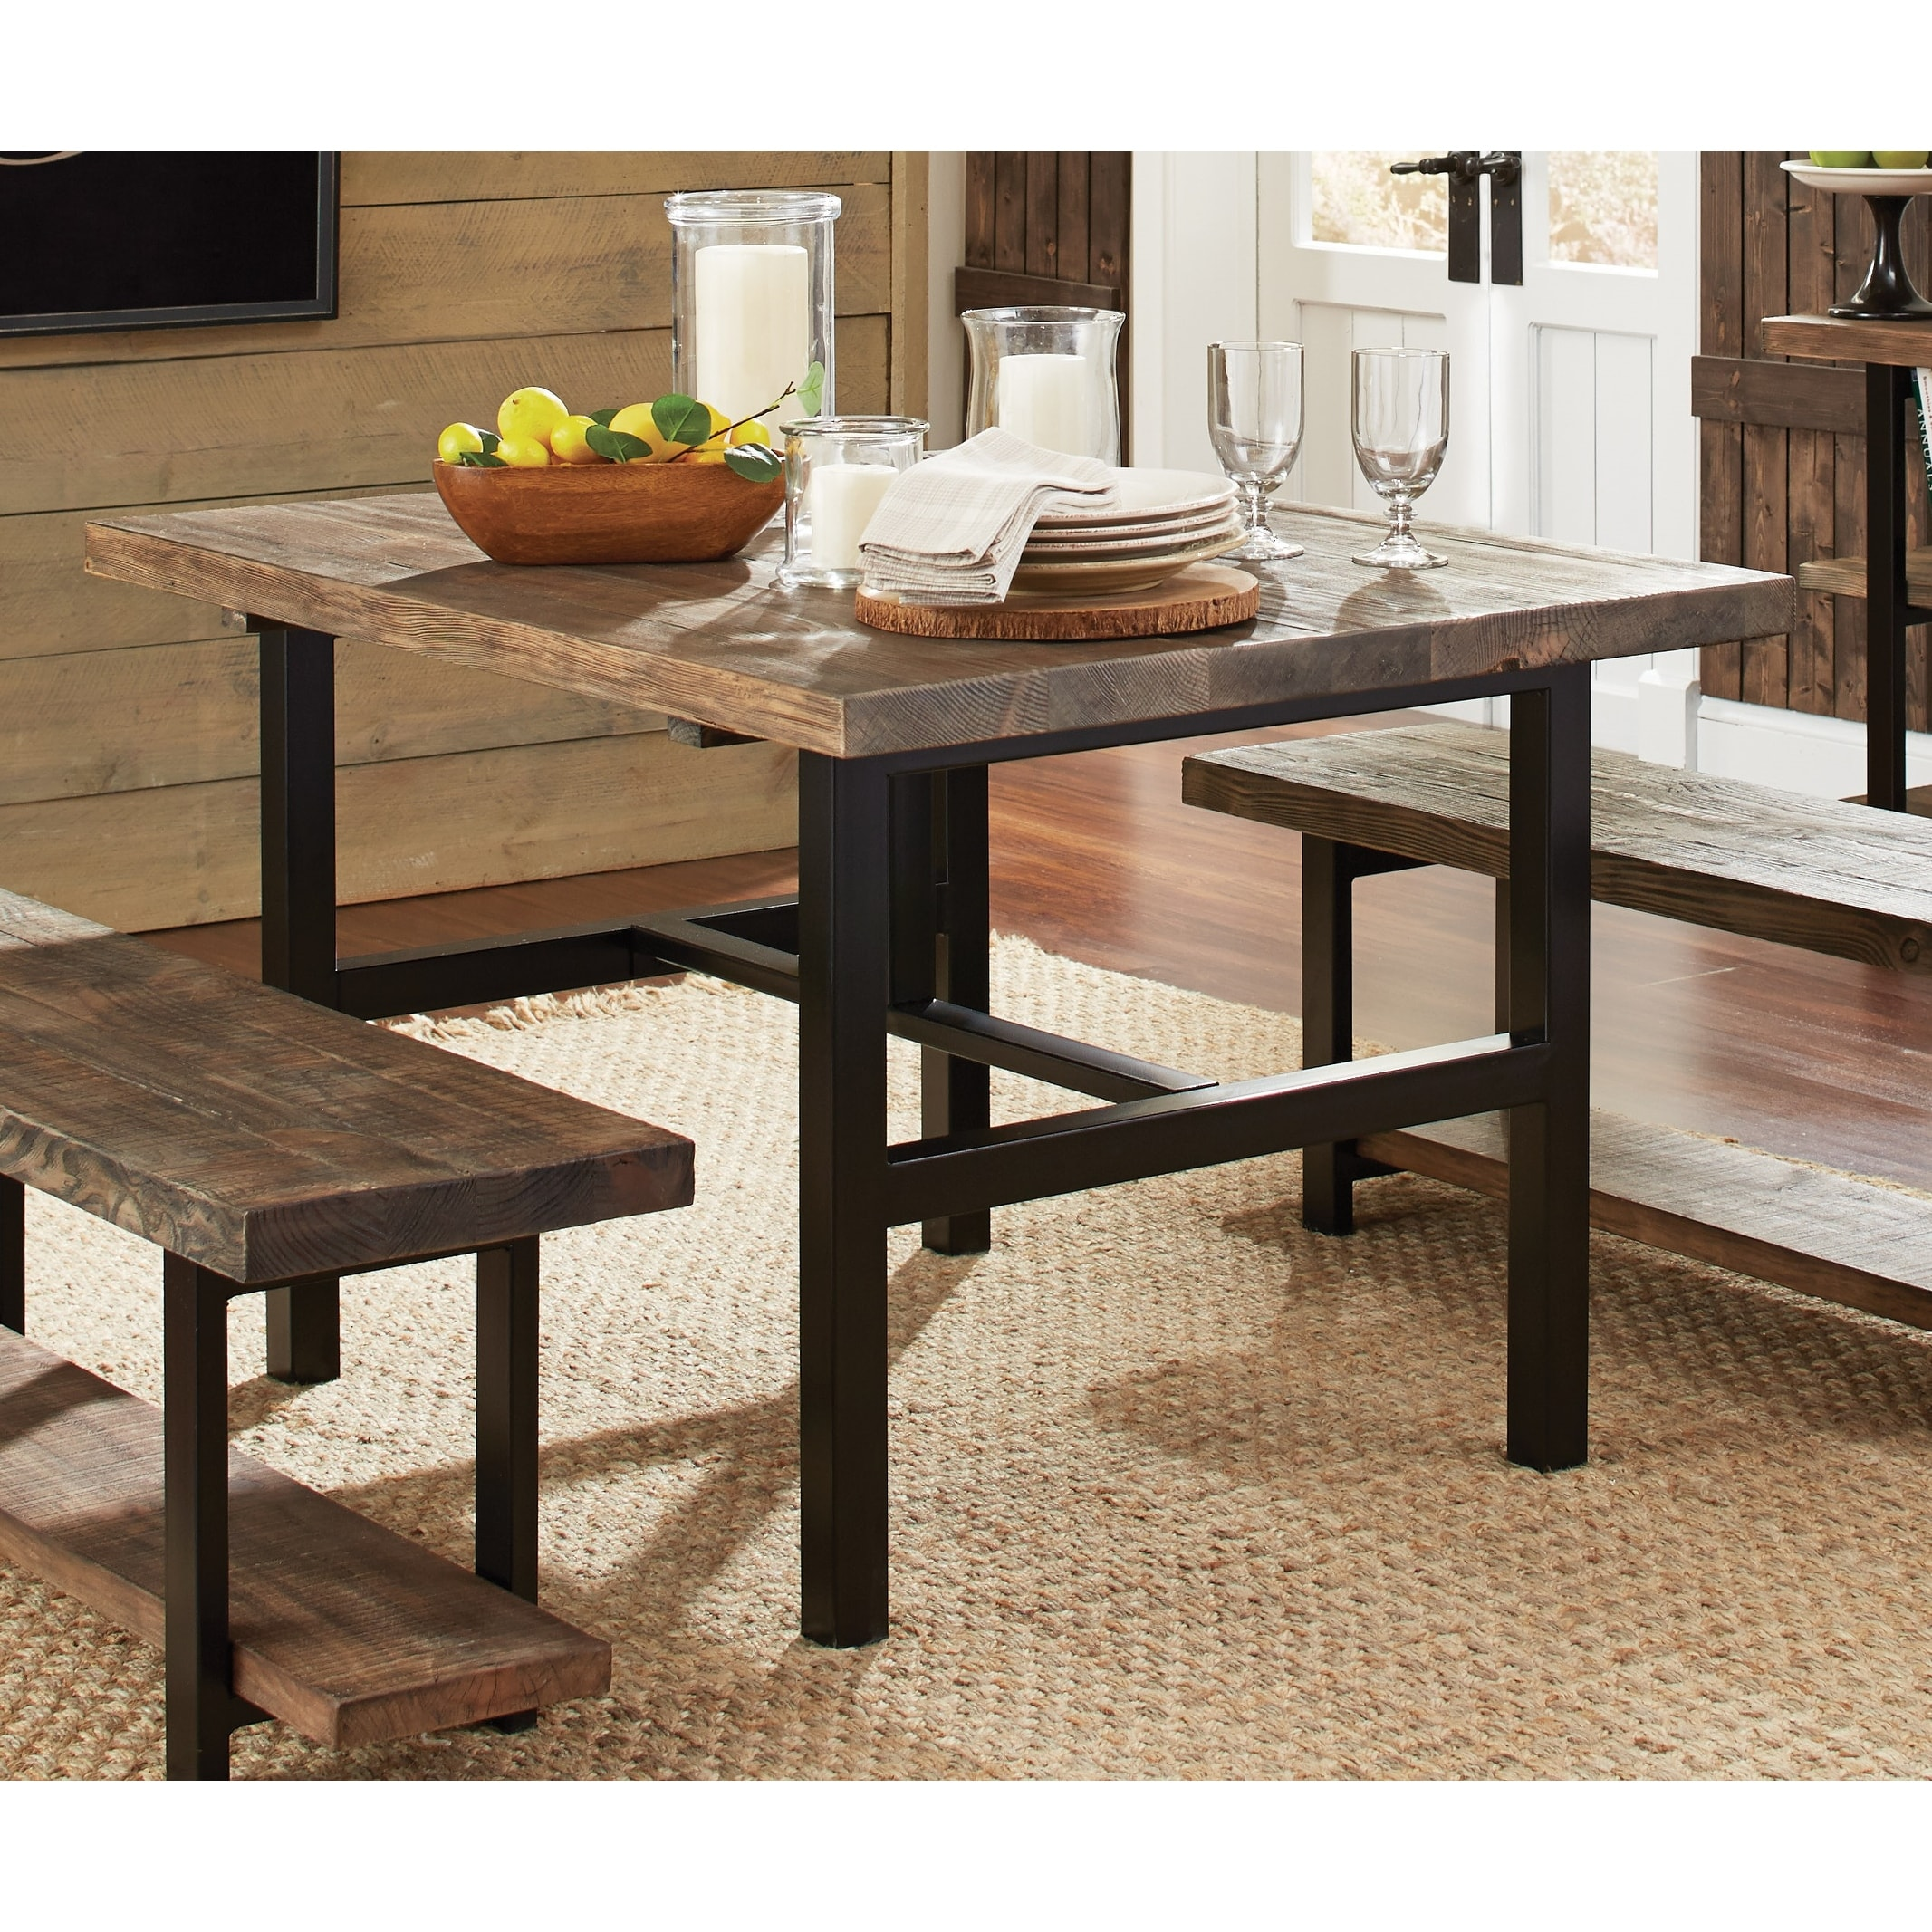 Carbon Loft Lawrence Reclaimed Wood 48 Inch Dining Table Brown On Sale Overstock 20306511